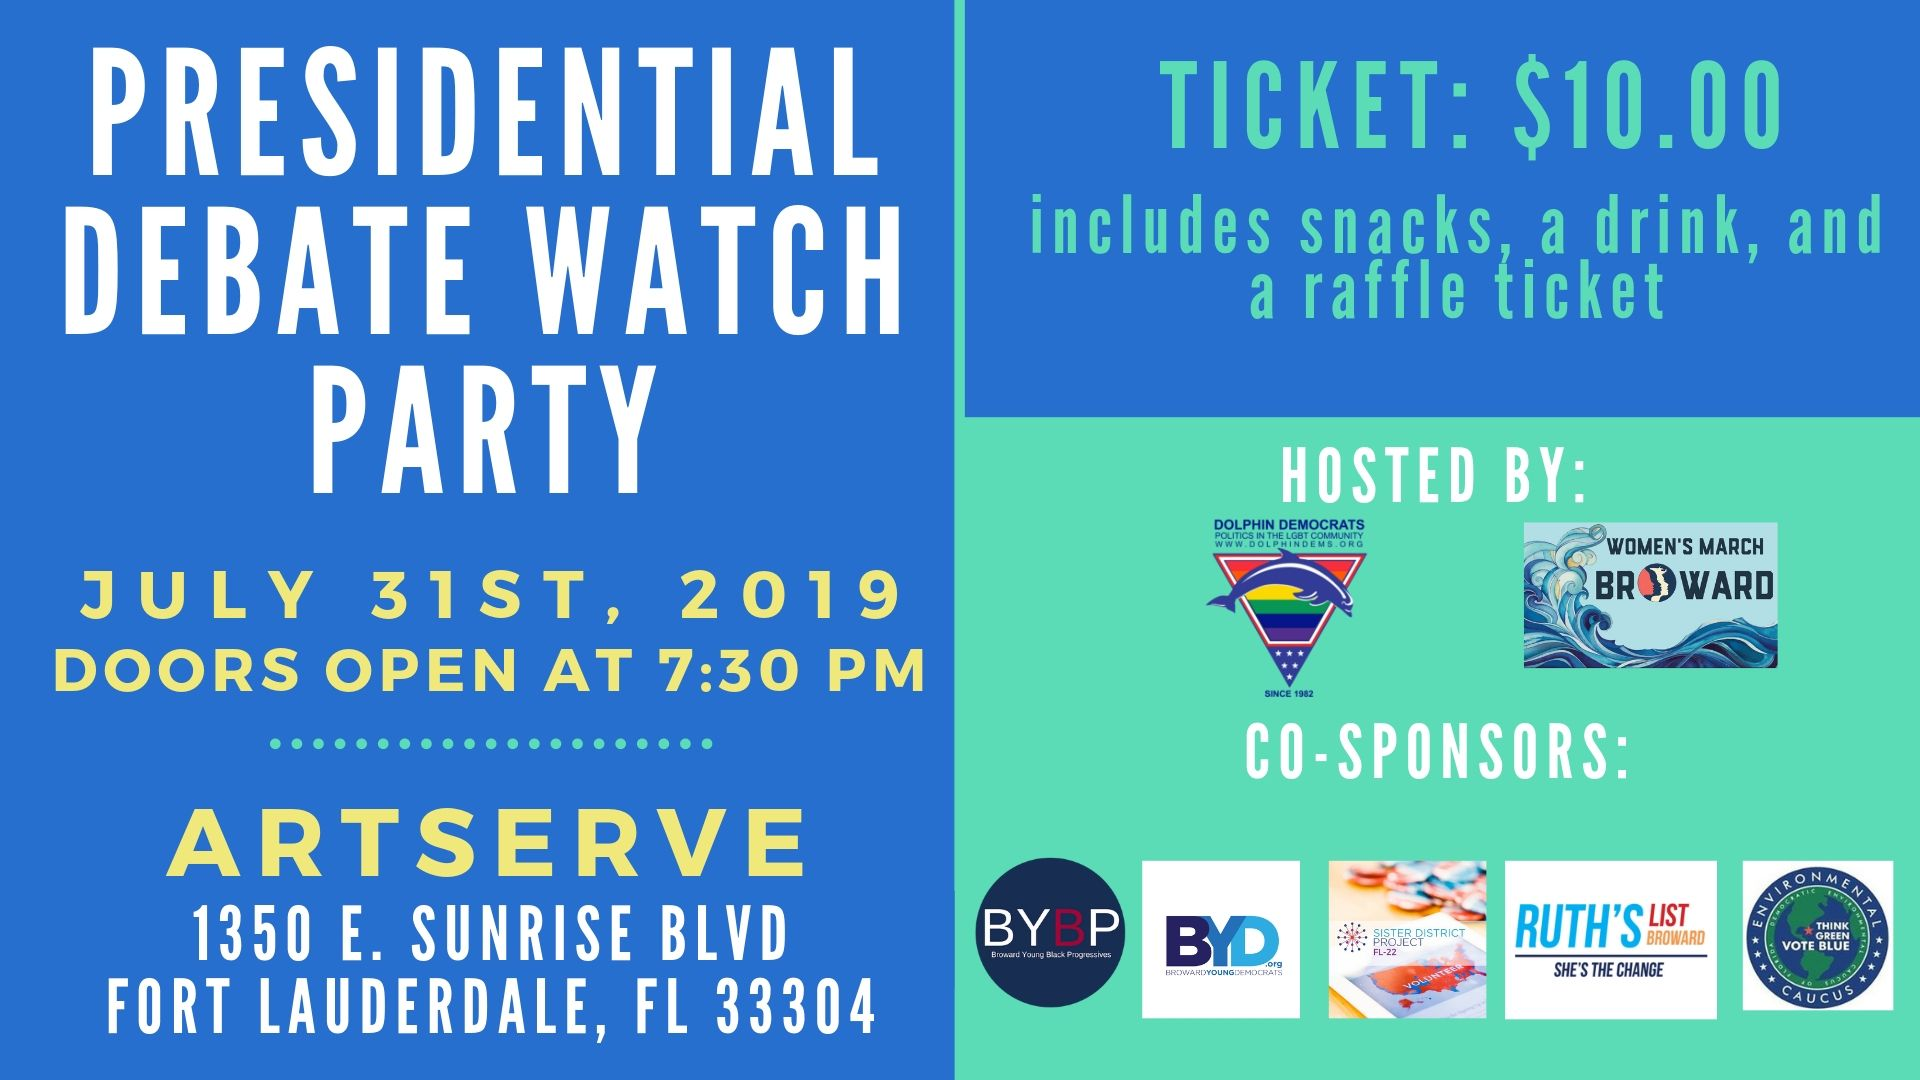 7-31-19: Presidential Debate Watch Party - Join The Dolphin Democrats & Women's March-Broward Chapterfor a Presidential Debate Watch PartyWednesday, July 31, 20197:30PM - 11:00PMART SERVE 1350 E Sunrise Blvd, Fort Lauderdale, FL 33304ADMISSION PRICE: $10 per person.Ticket Includes: Admission, 1 Drink, Snacks & 1 Raffle Ticket Cash Bar available -All ticket sales are final, non-transferable or refundable -Must present ID at door. For questions regarding tickets purchase please contact us at 954-358-9327 or email us at president@dolphindems.org Thank you to our Co-Sponsors: Broward Young Black Progressives Broward Young DemocratsSister District Project - FL 22 Ruth's List Broward Democratic Environmental Caucus of FloridaTickets: https://www.dolphindems.org/events/presidential-debate-watch-party/?fbclid=IwAR0AtXTl7mx-TDSnI5NypBN7tkMJ1J1Oyc1hXY2hltlGDderwHTb14vHe-o